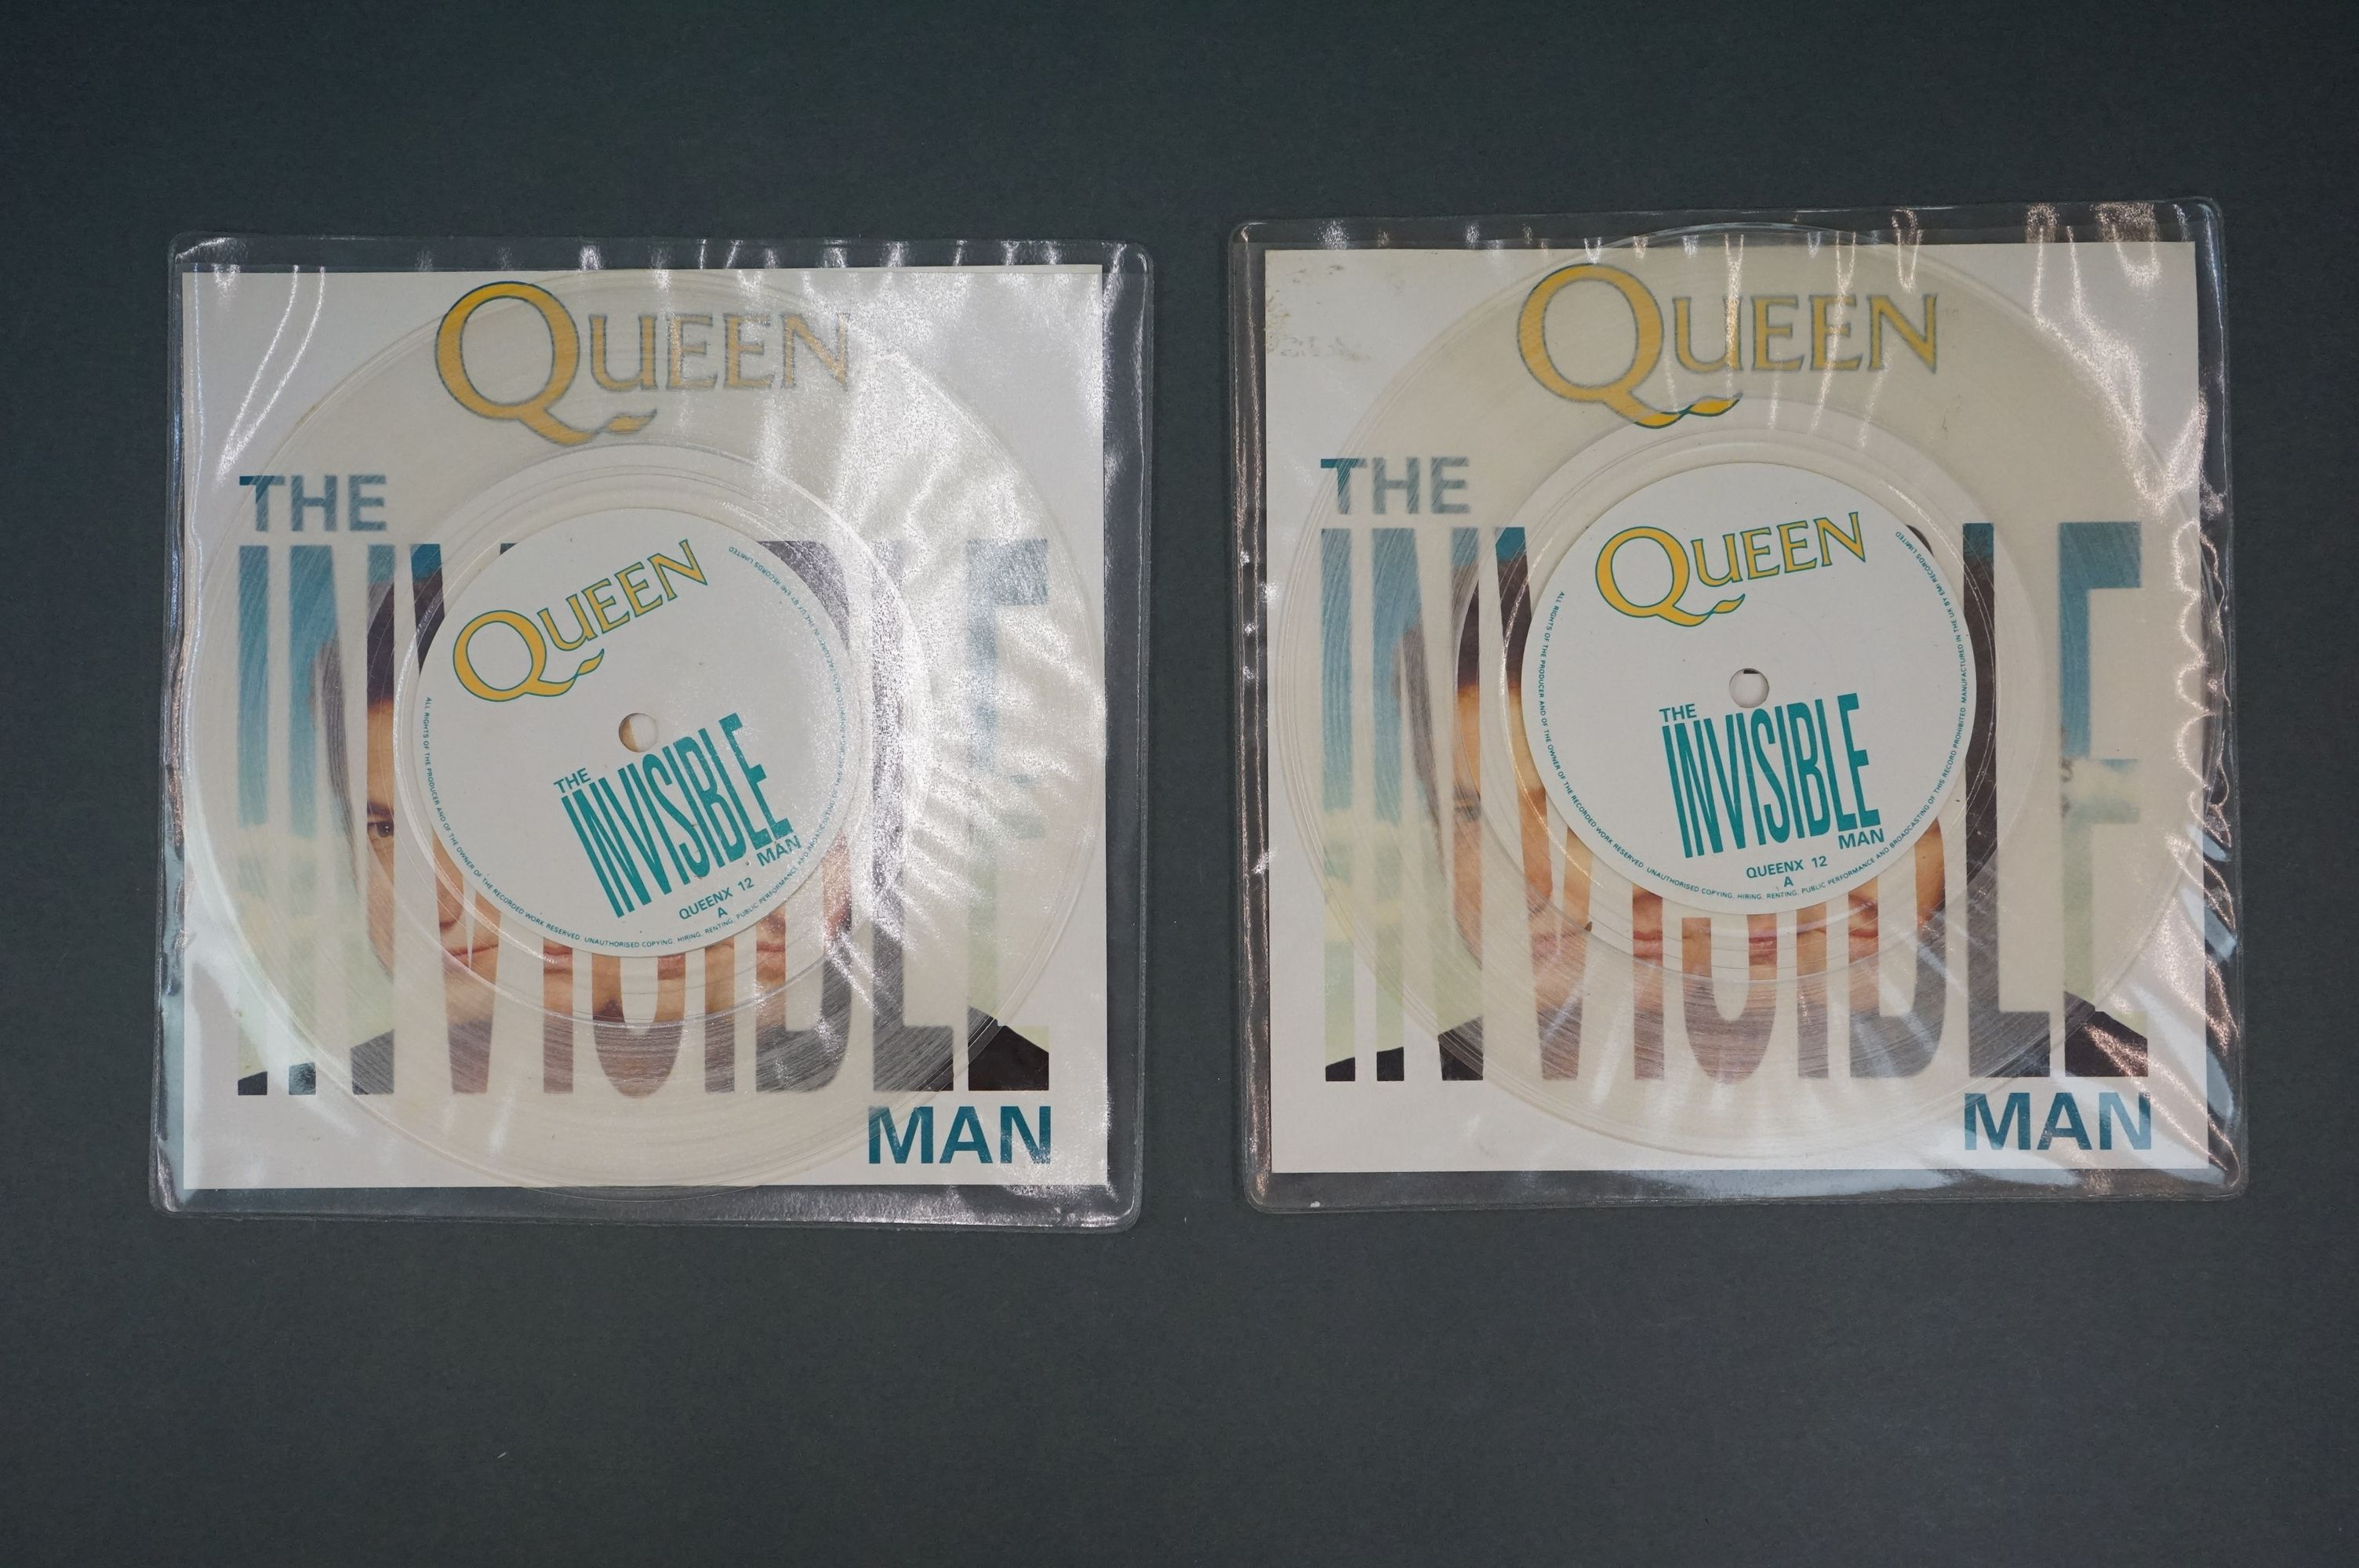 Vinyl - Queen & related collection of 7 inch singles including 12 x No One But You Ltd Edn picture - Image 6 of 11